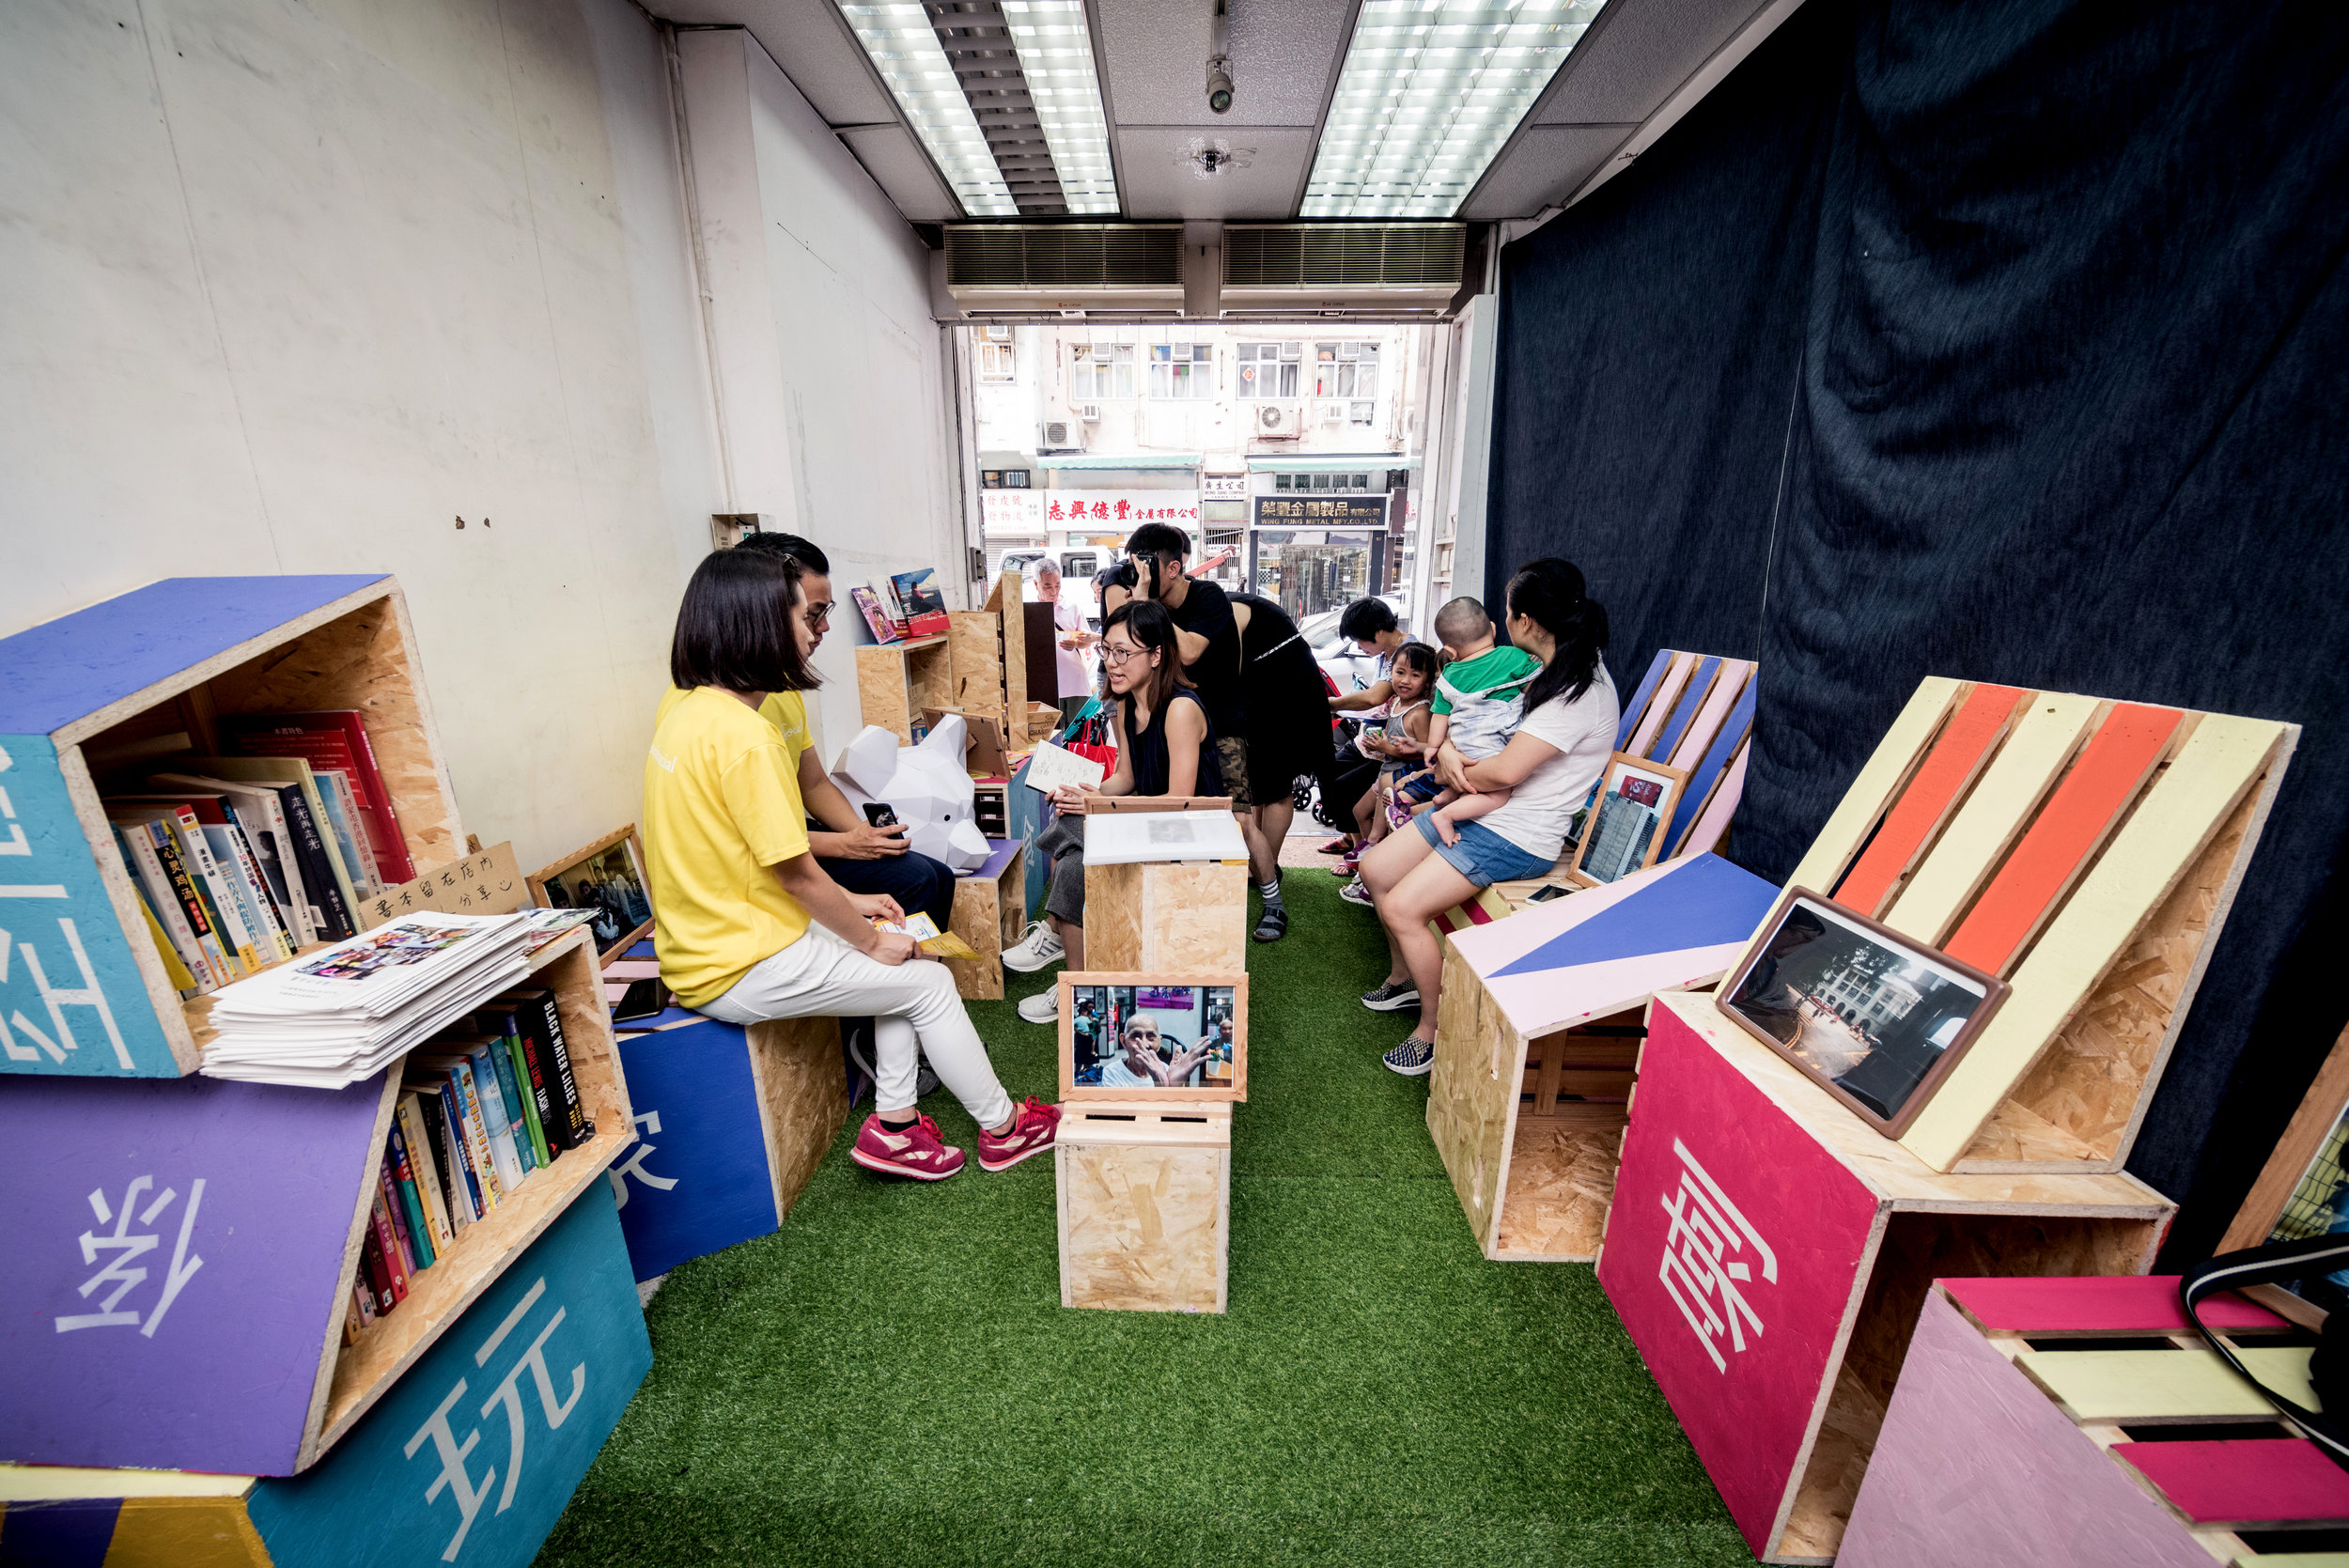 20170822 OneBite Social Project House (12 of 115).jpg